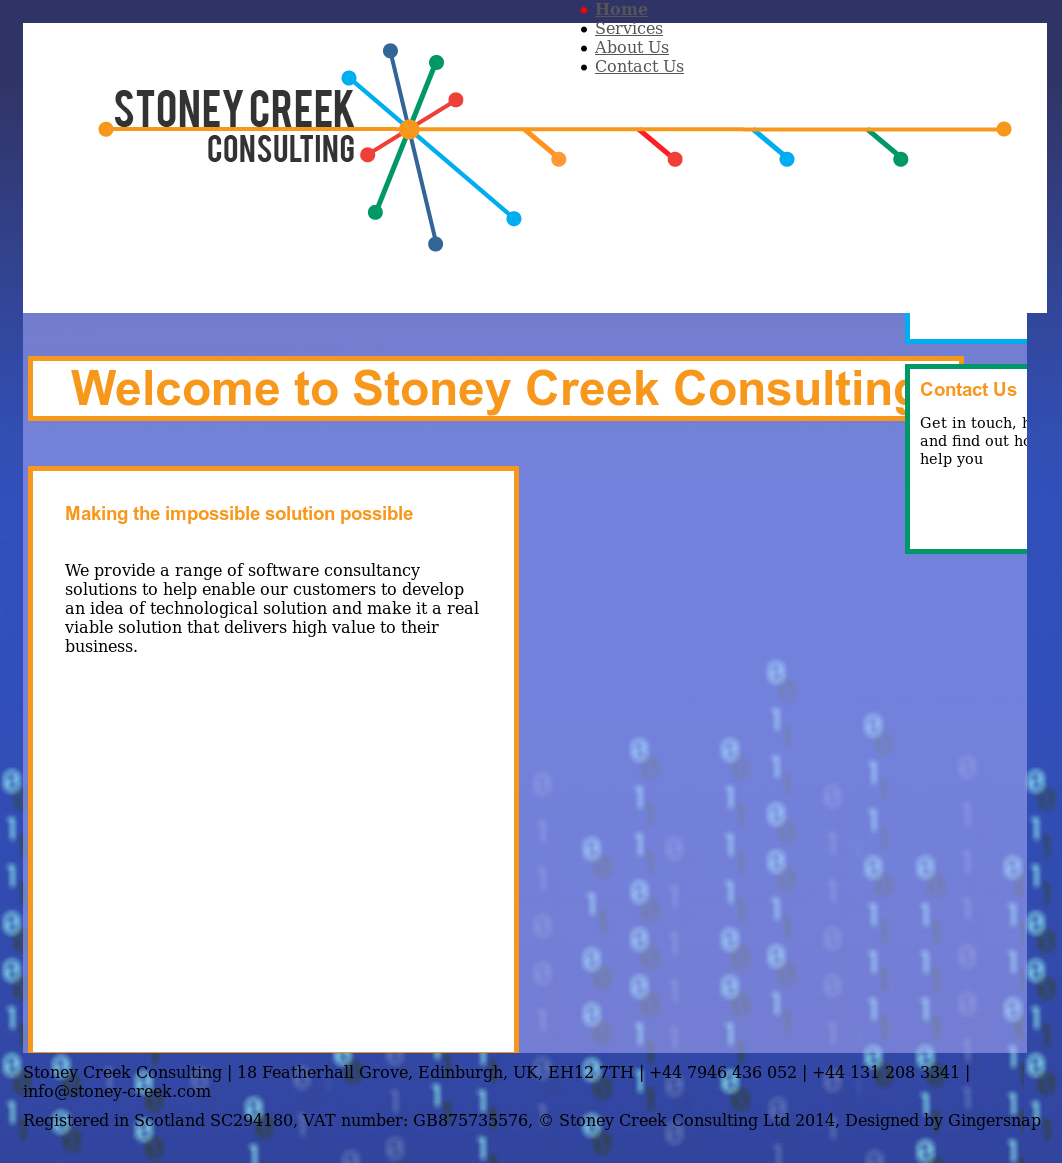 stoney creek dating site Visit ratemds for information on dr marco castelluzzo in stoney creek get contact info, maps, medical practice history, affiliated hospitals & more.